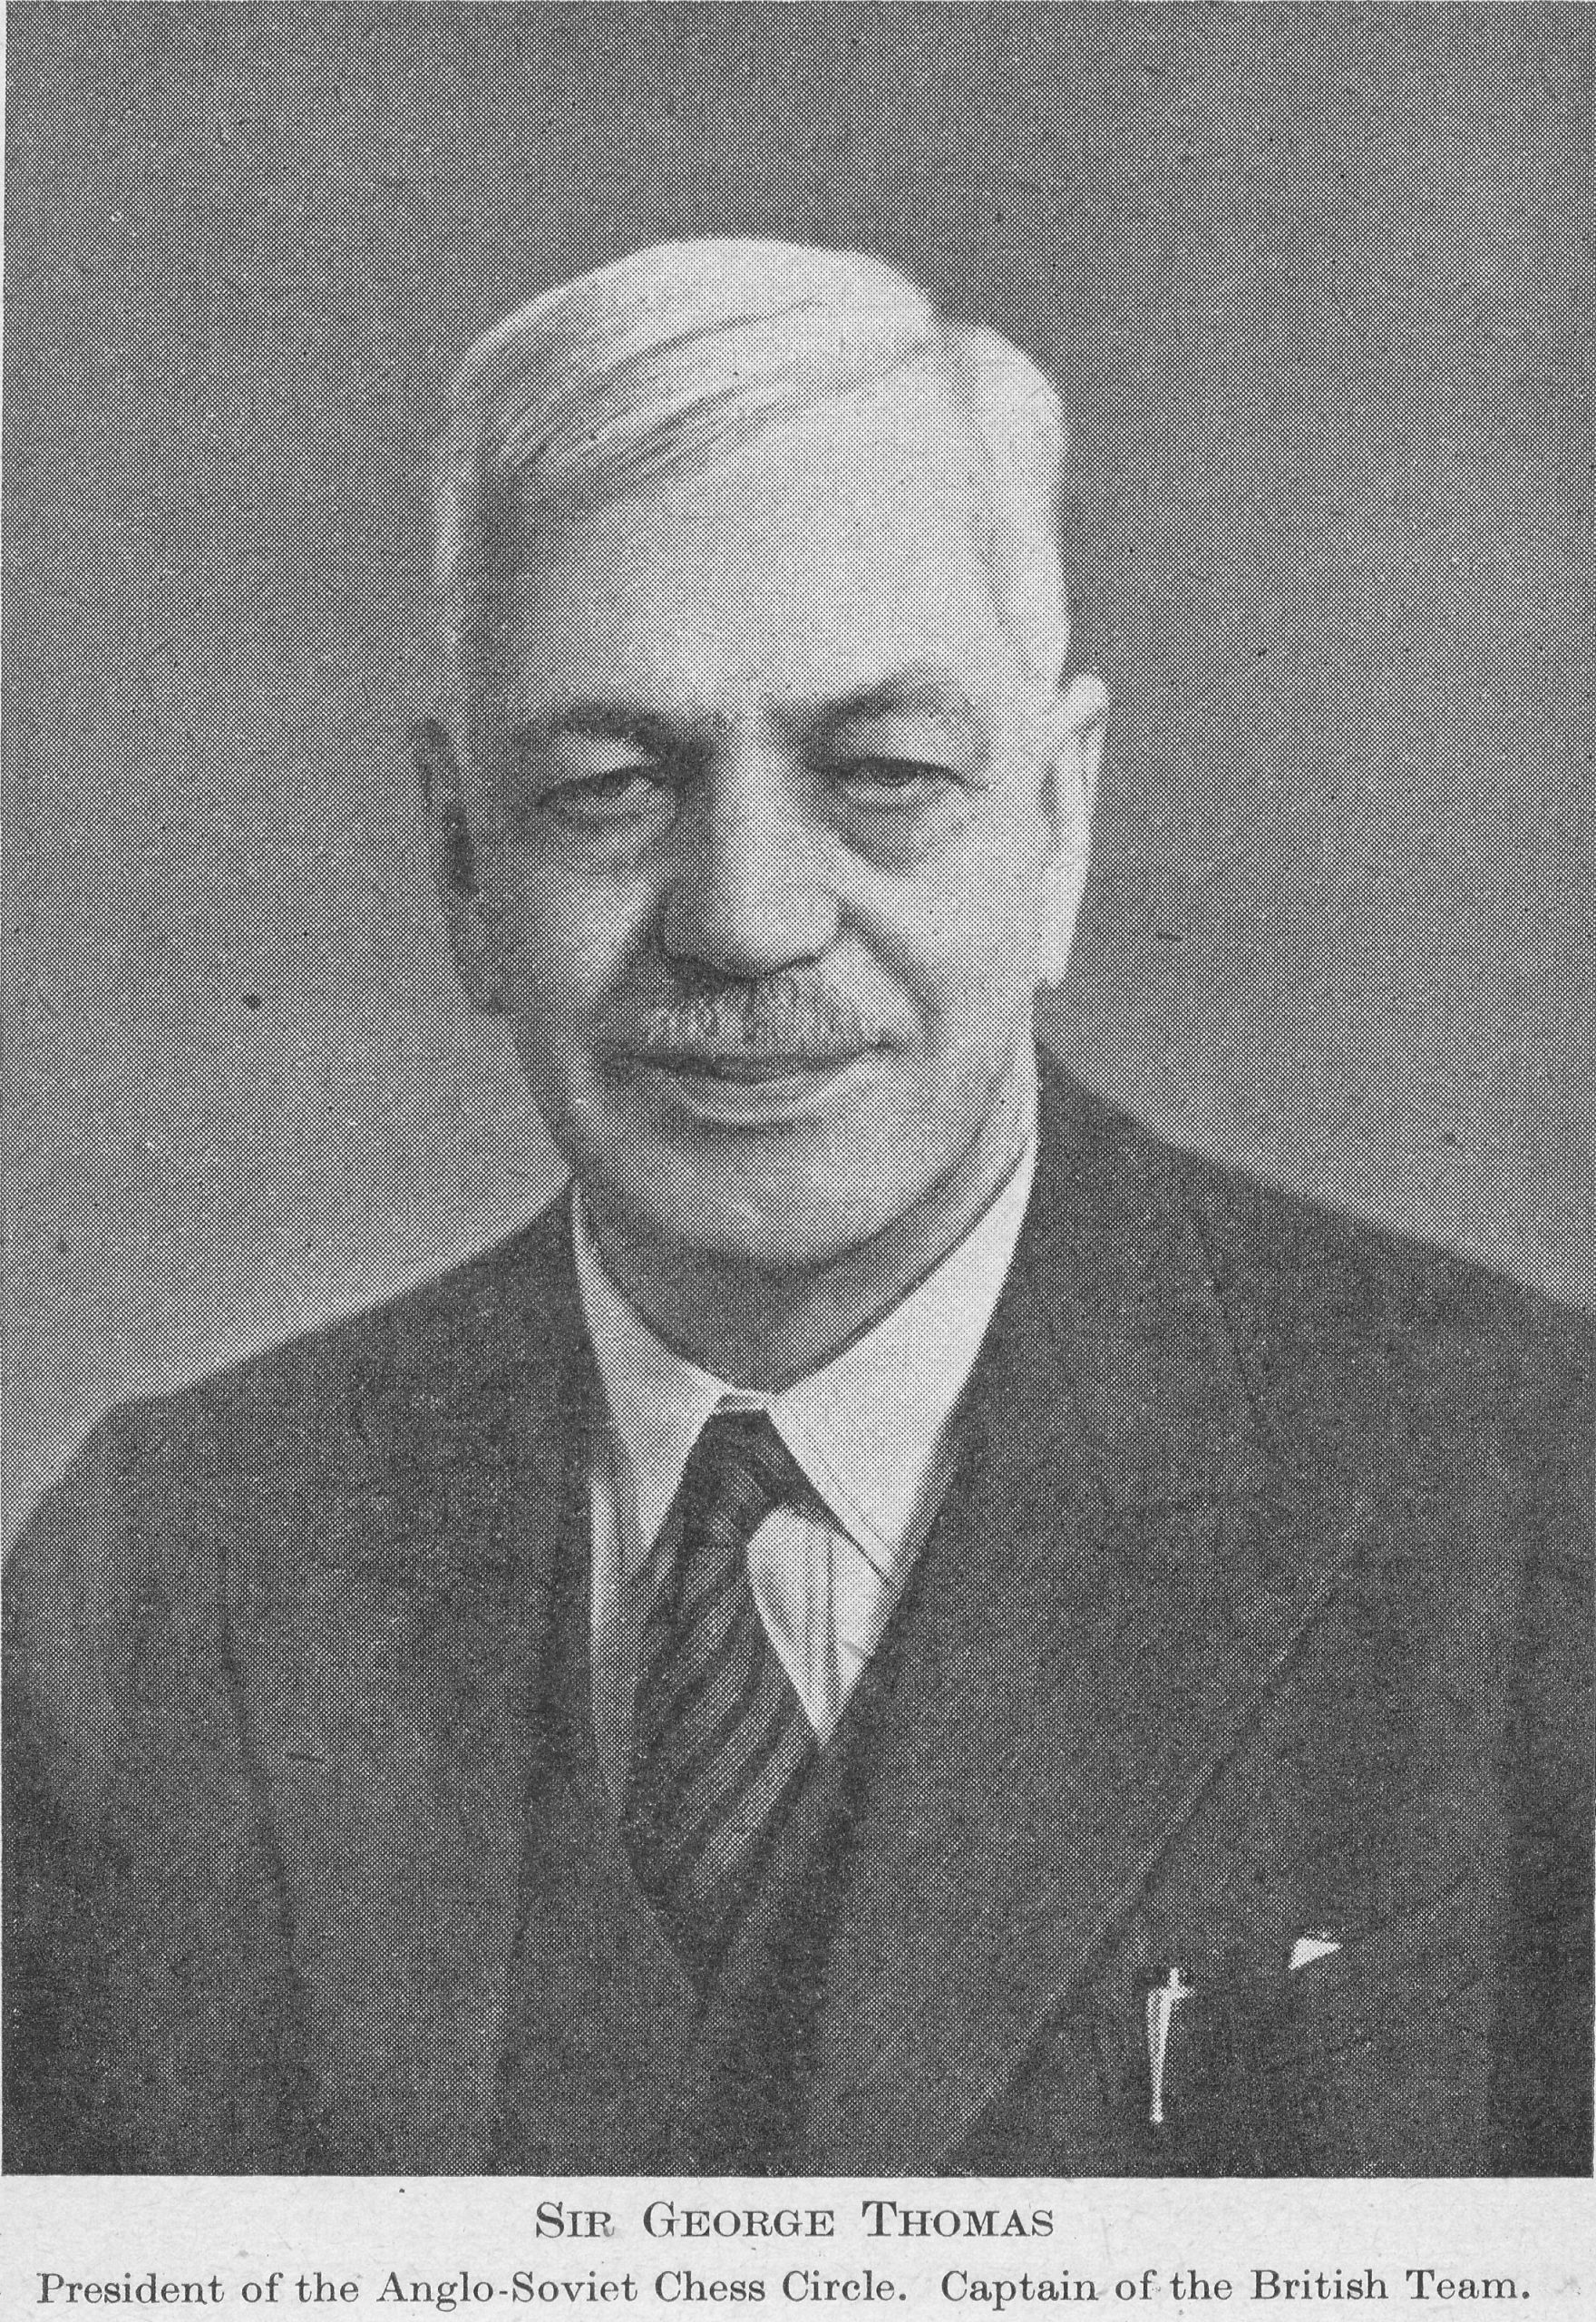 Sir George Thomas, President of the Anglo-Soviet Chess Circle. Captain of the British Team